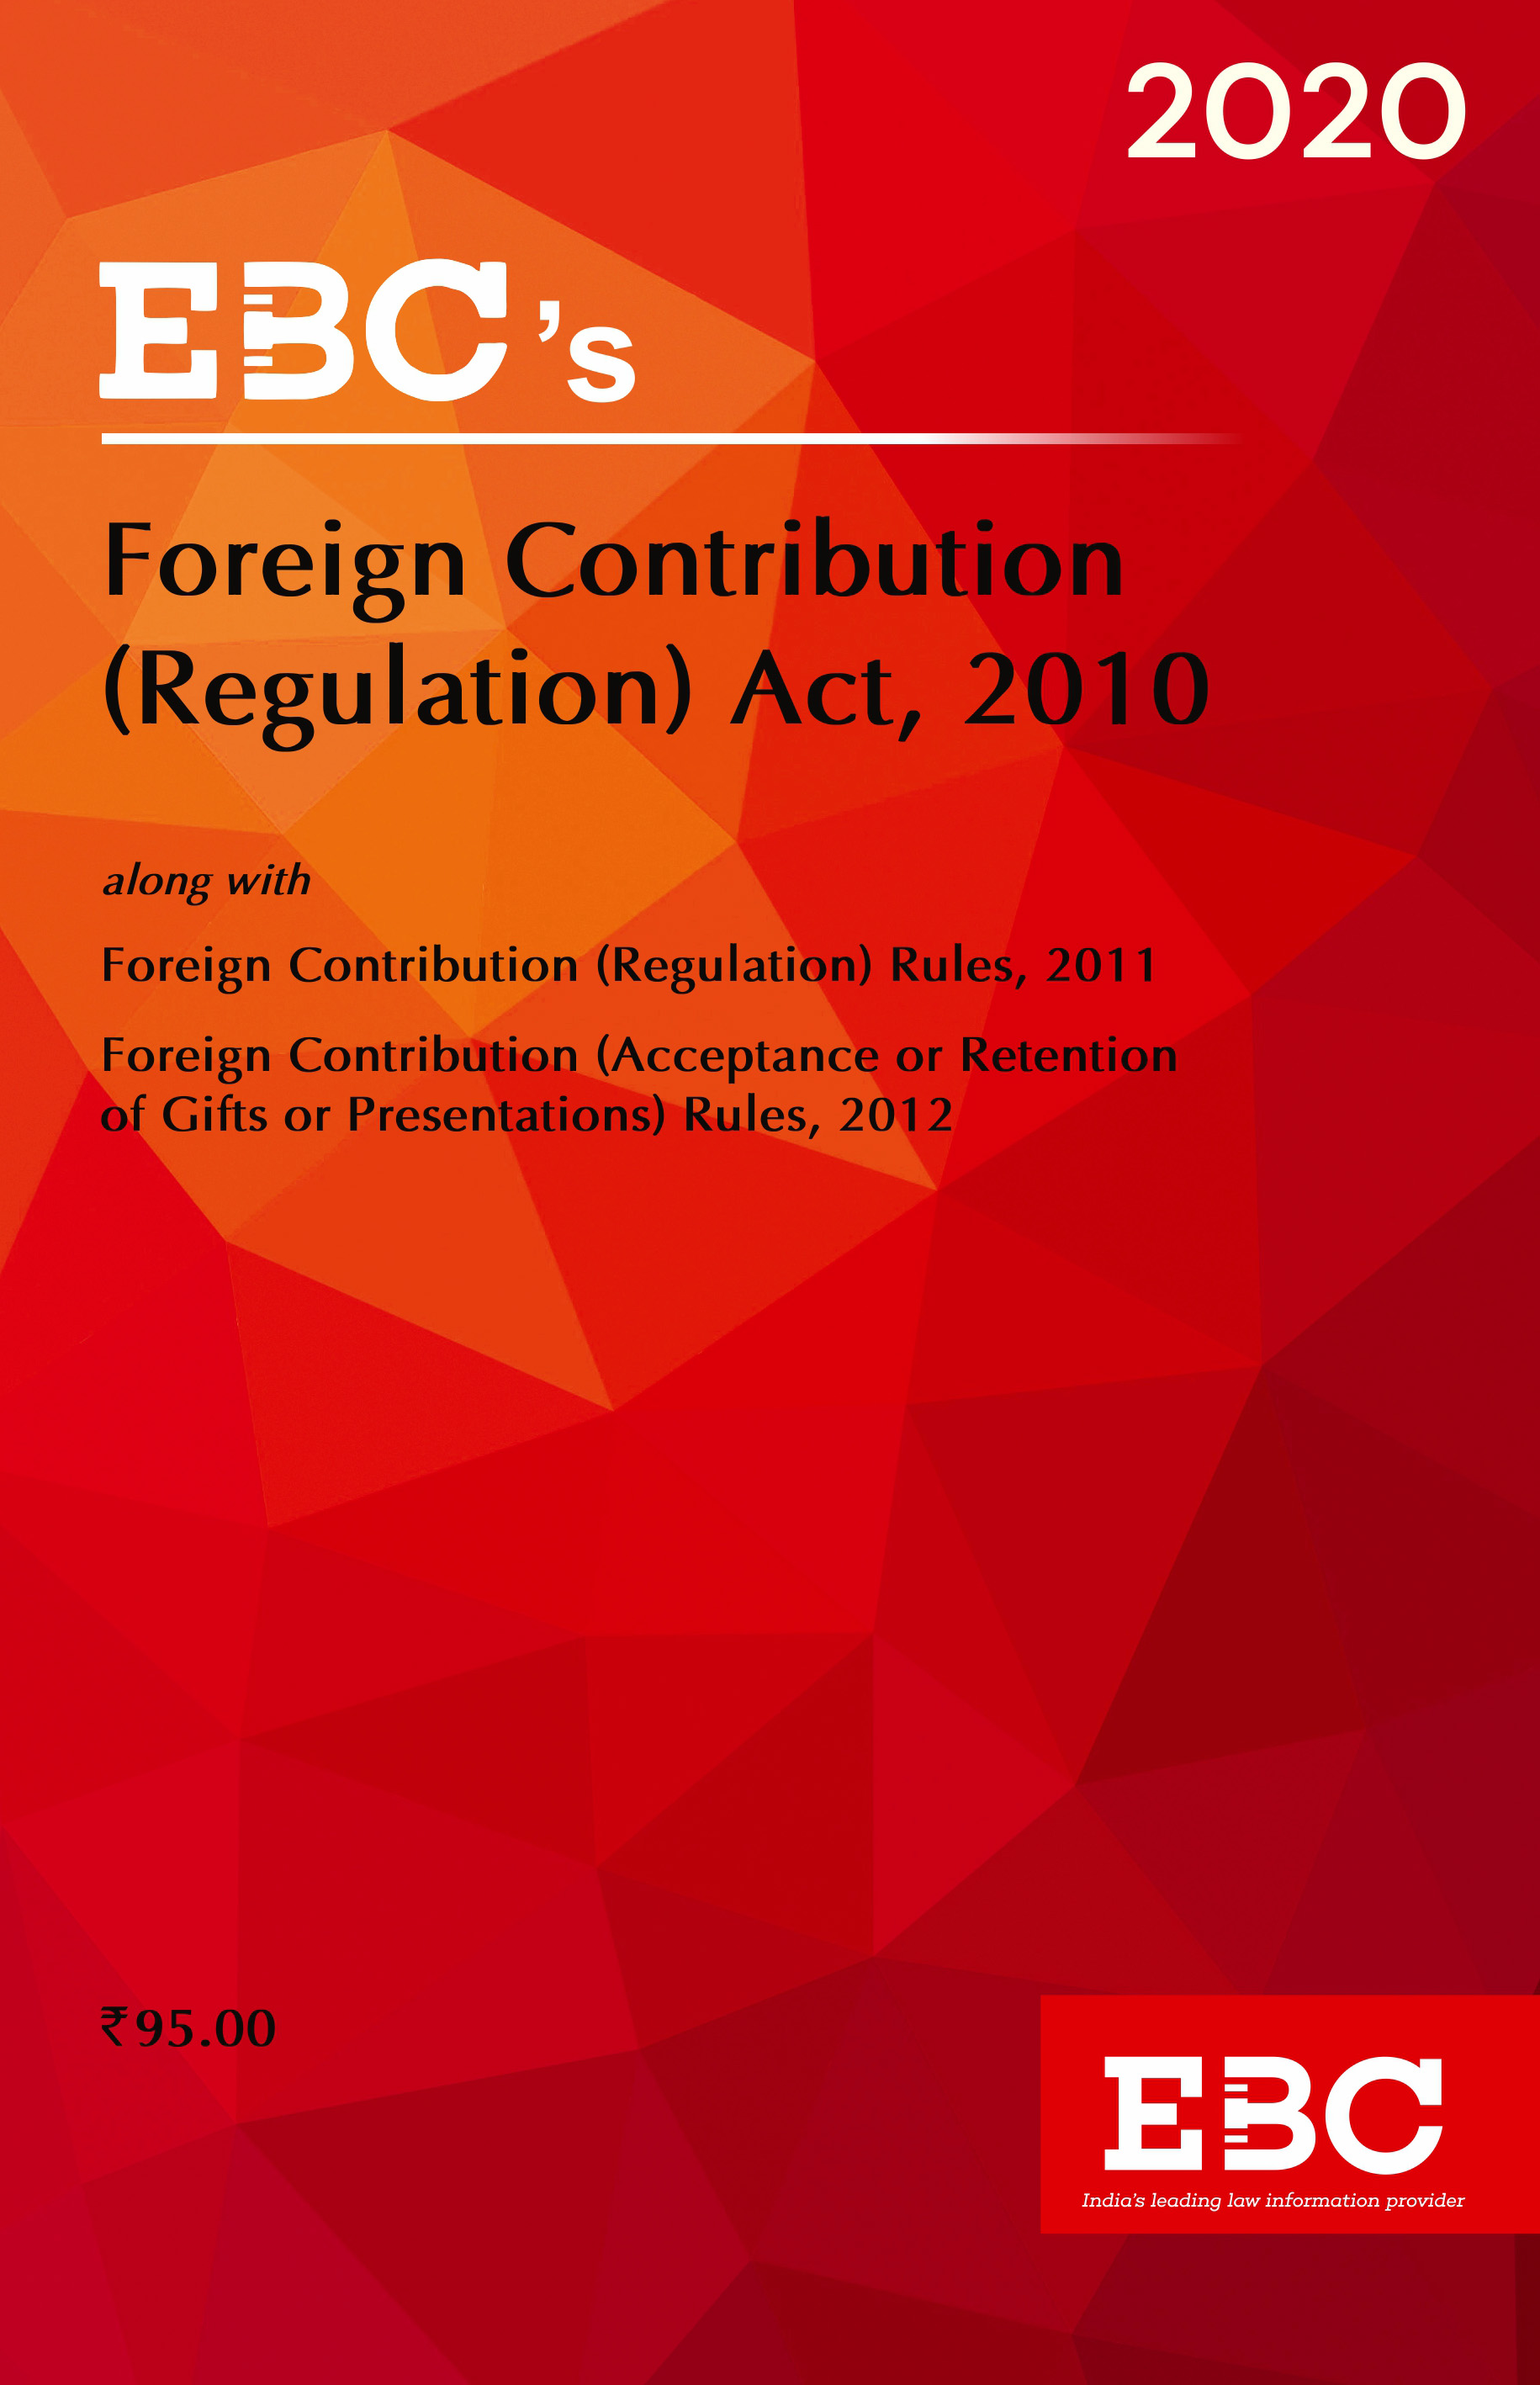 Foreign Contribution (Regulation) Act, 2020